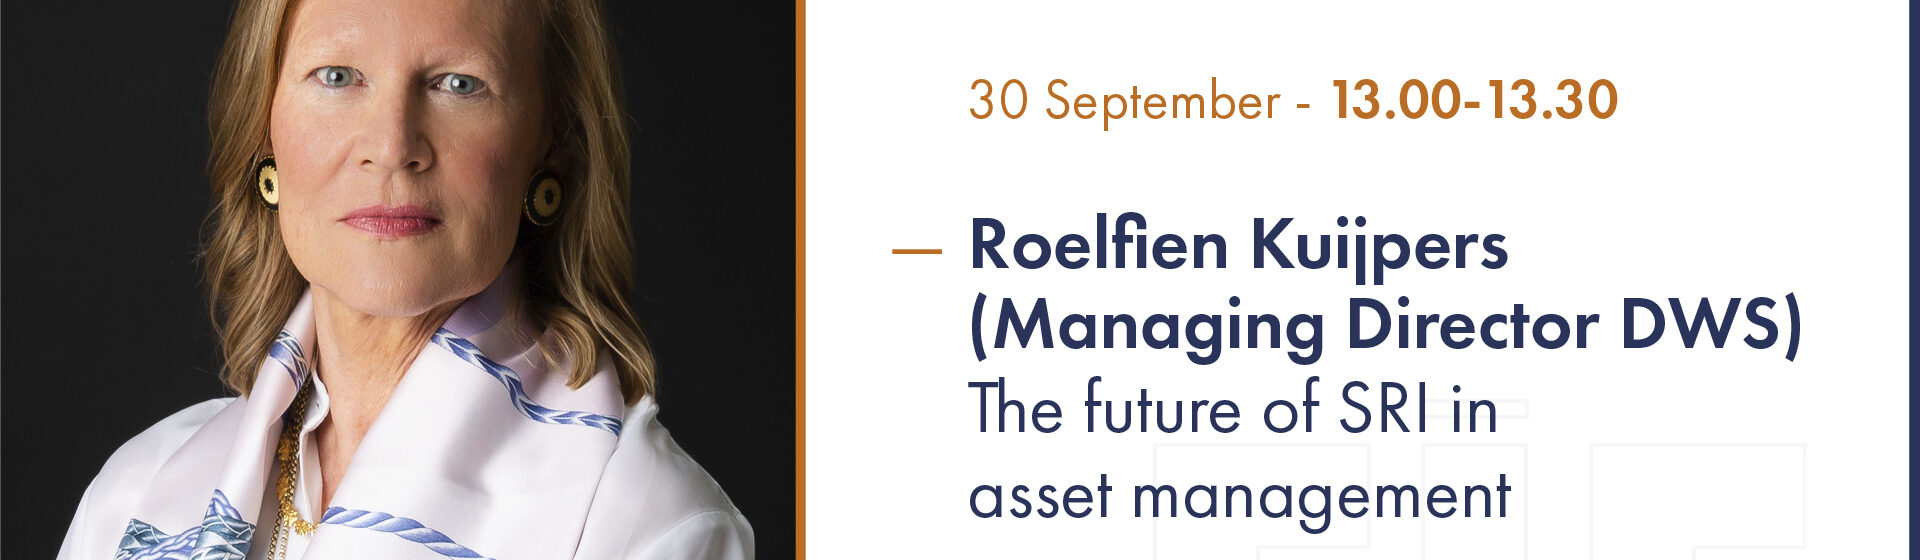 The future of SRI in asset management – Roelfien Kuijpers